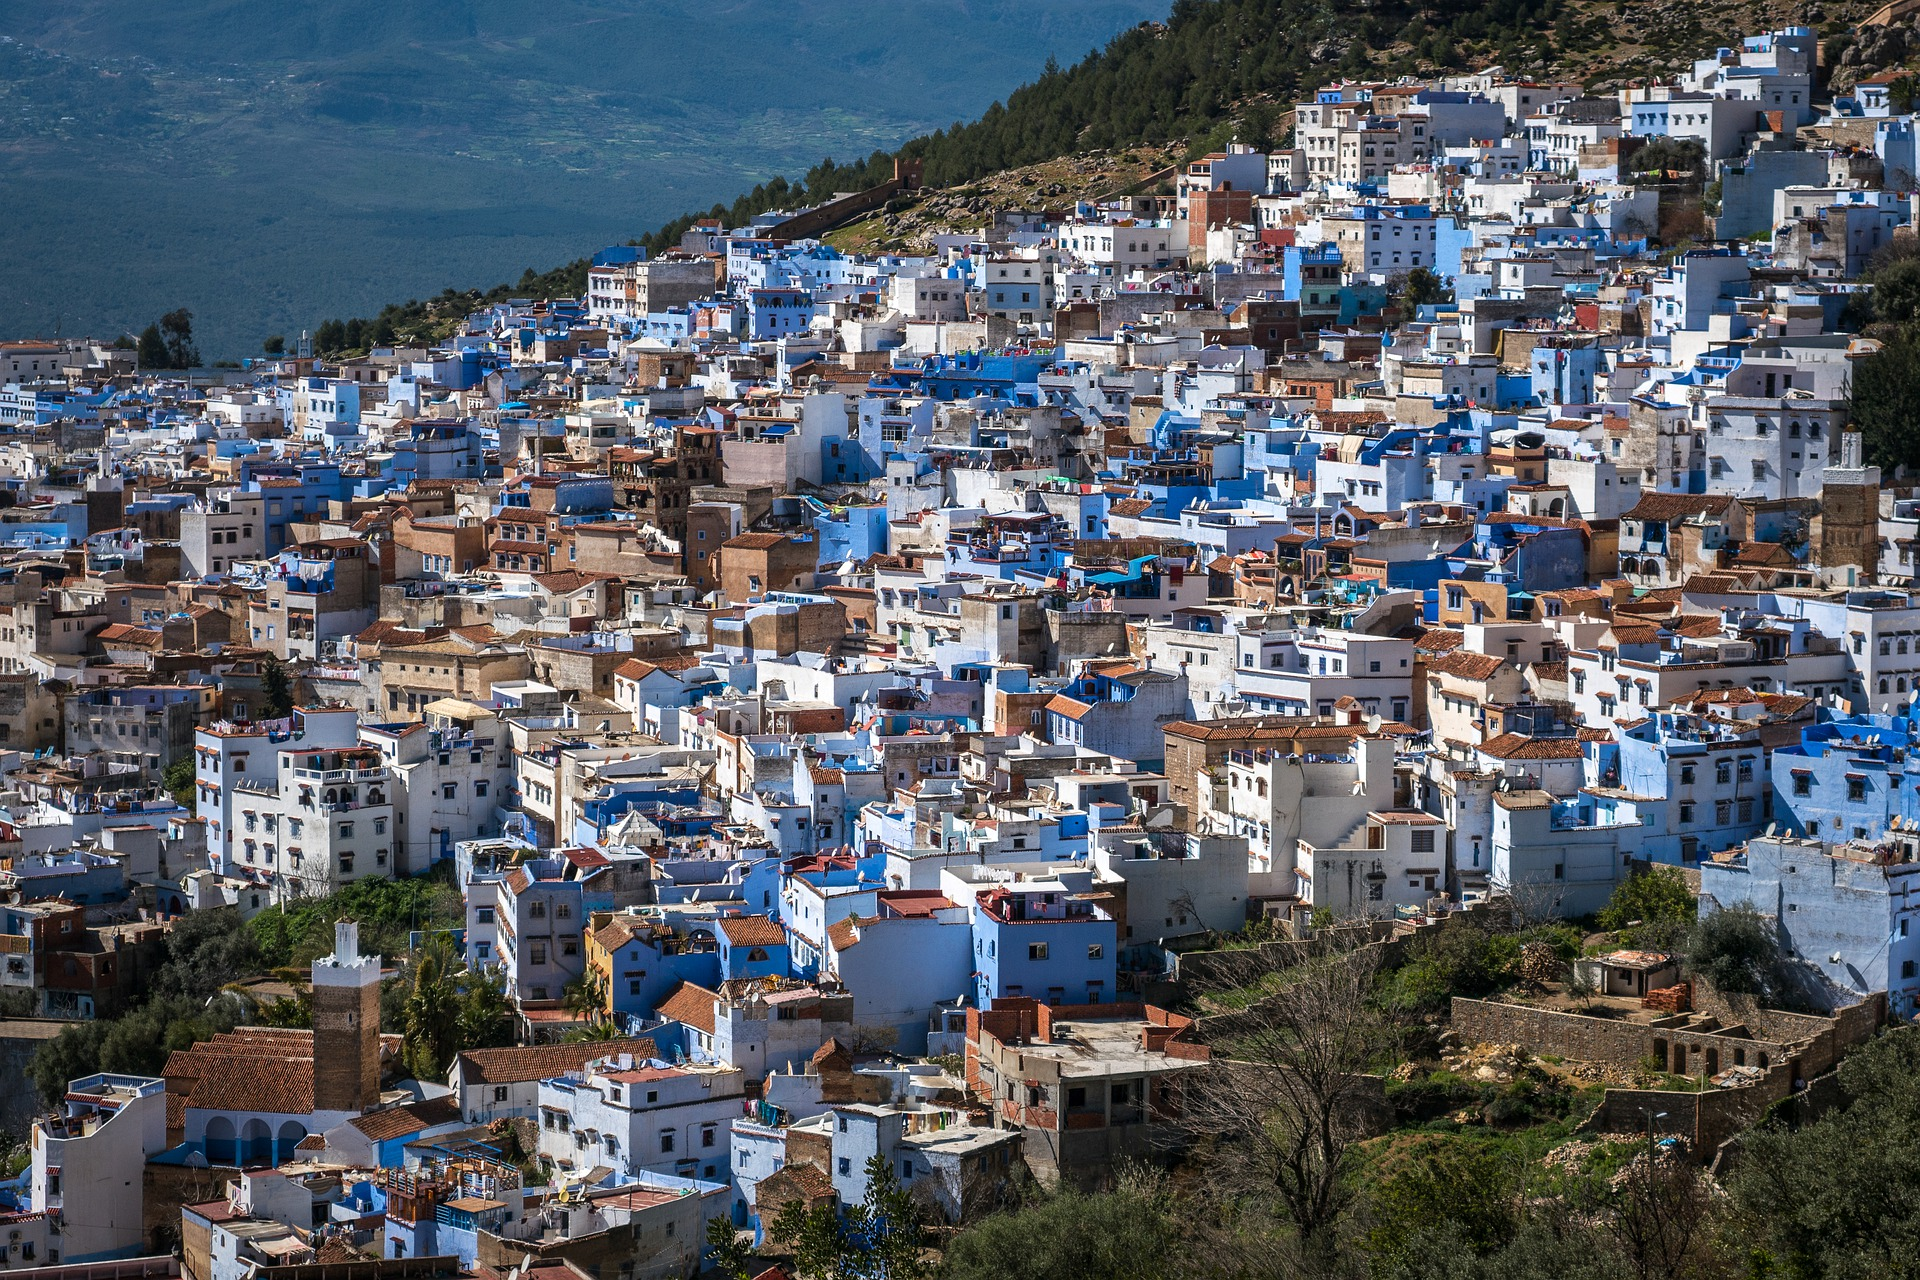 Sahara Desert Tour - Get To Know Morocco - Chefchaouen